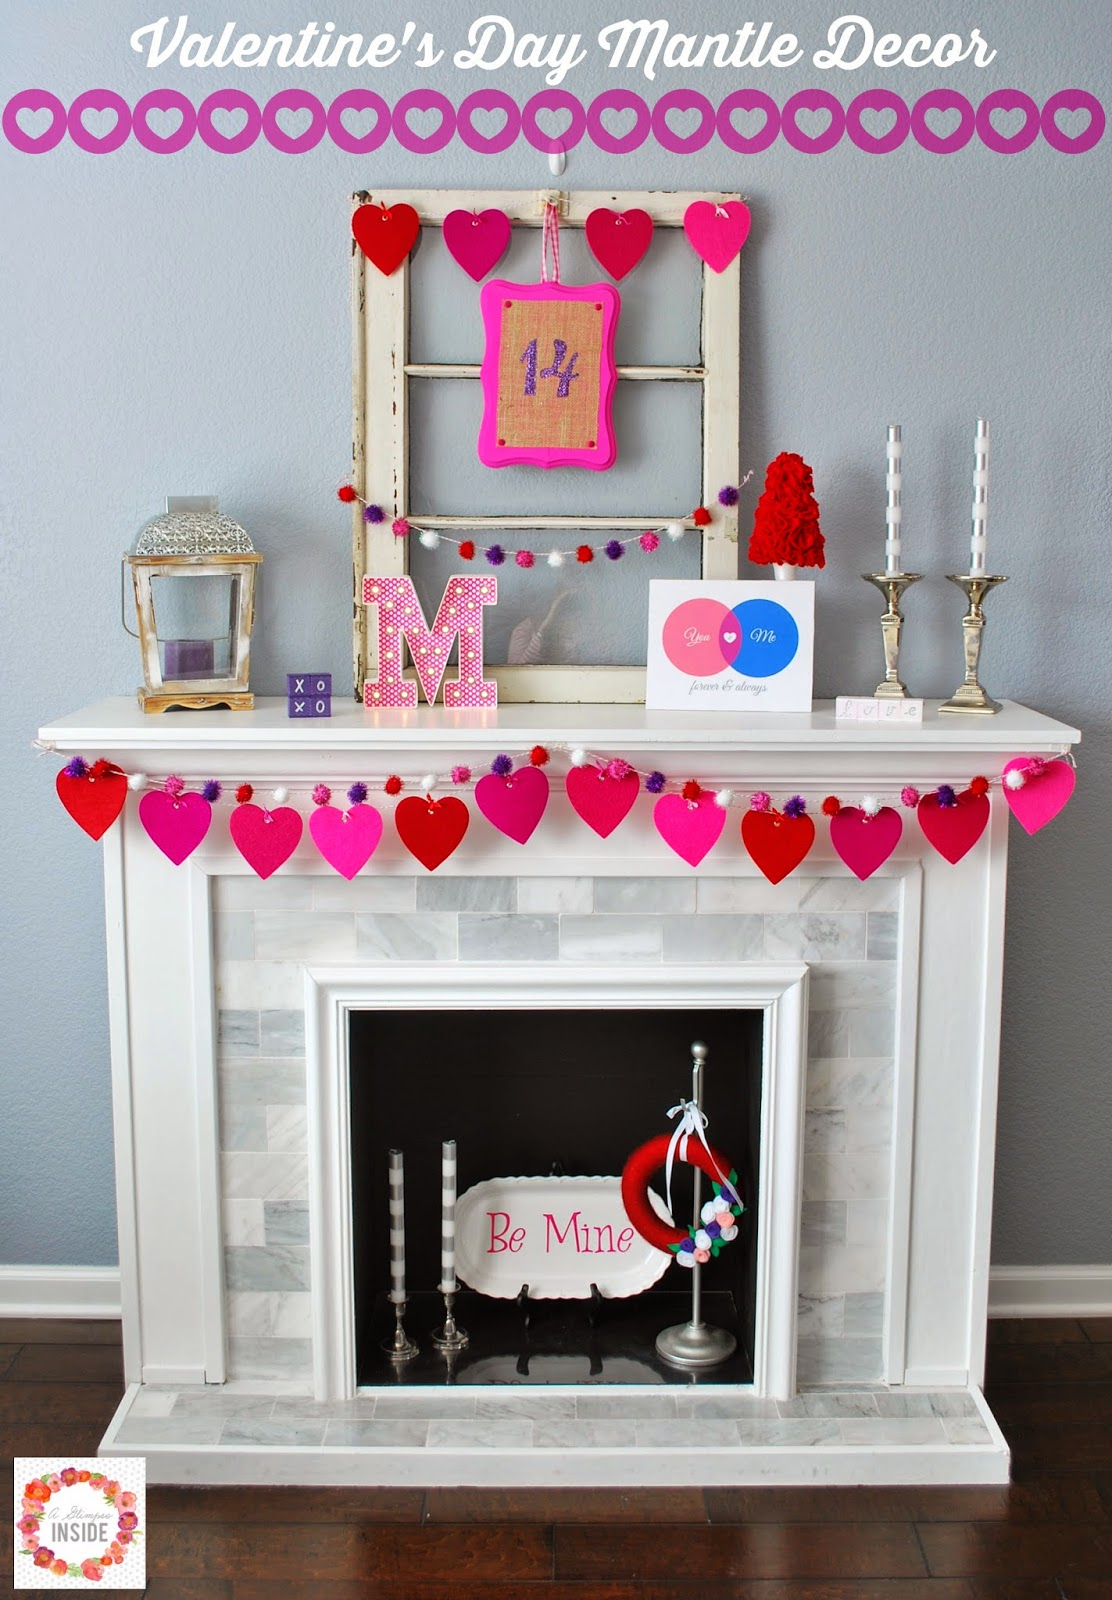 http://www.aglimpseinsideblog.com/2015/02/my-valentines-day-mantle.html